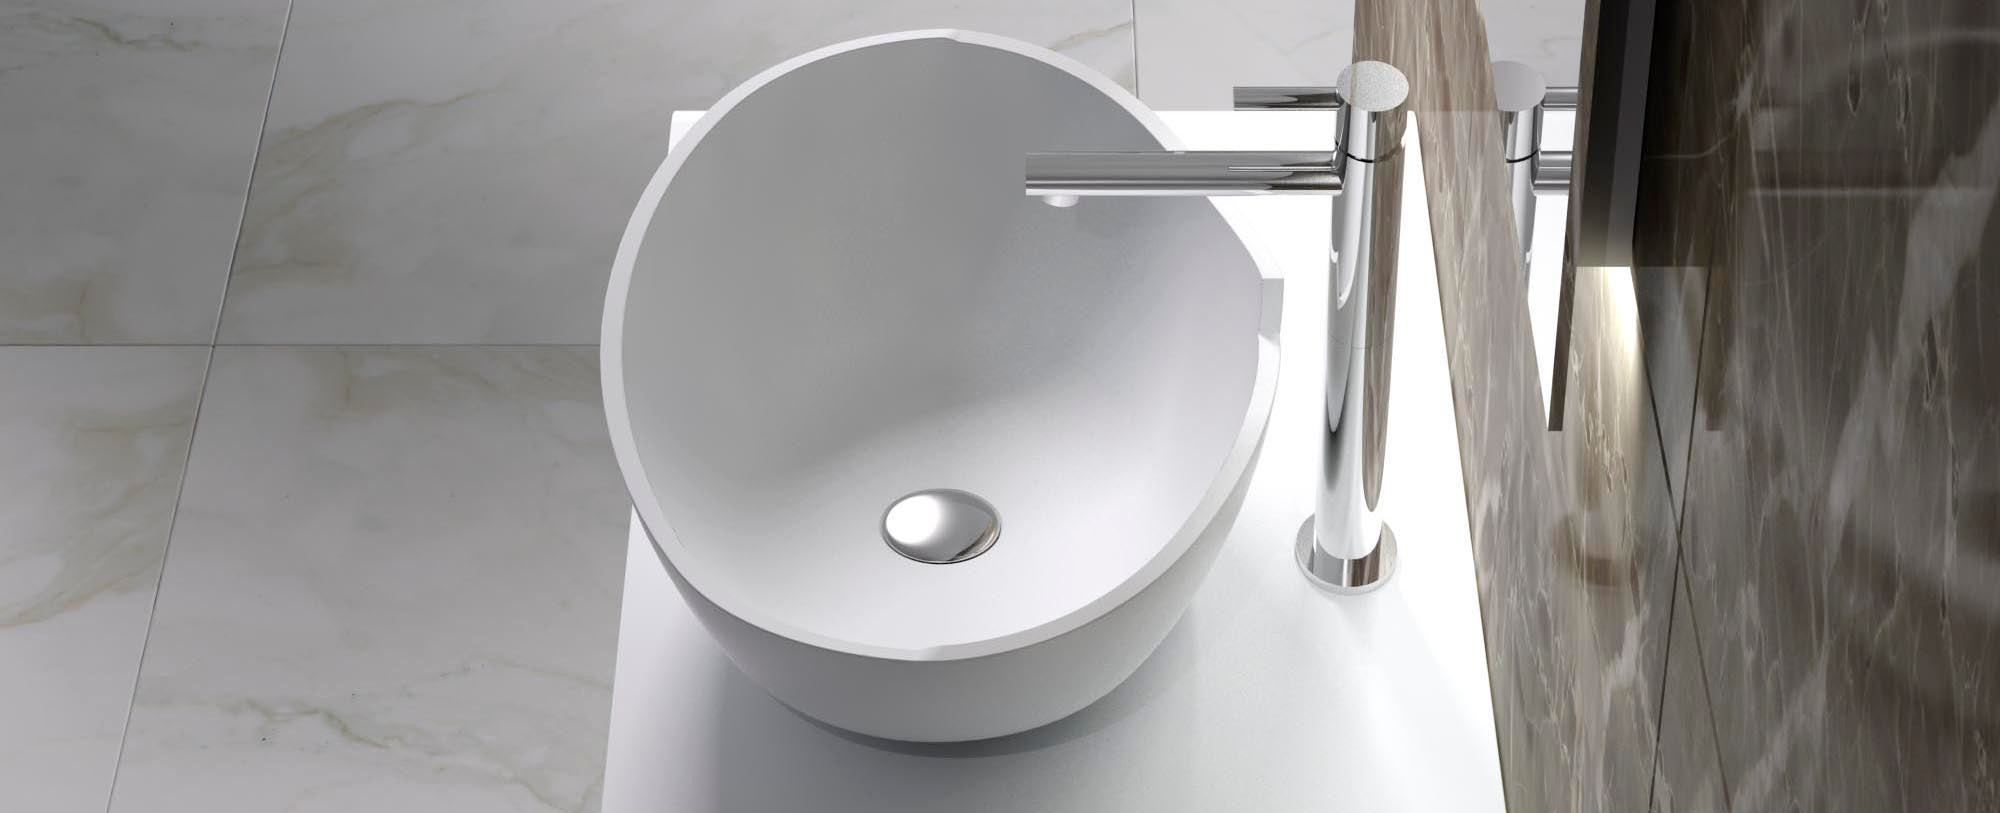 CW-106 ADM Bathroom Countertop Sink